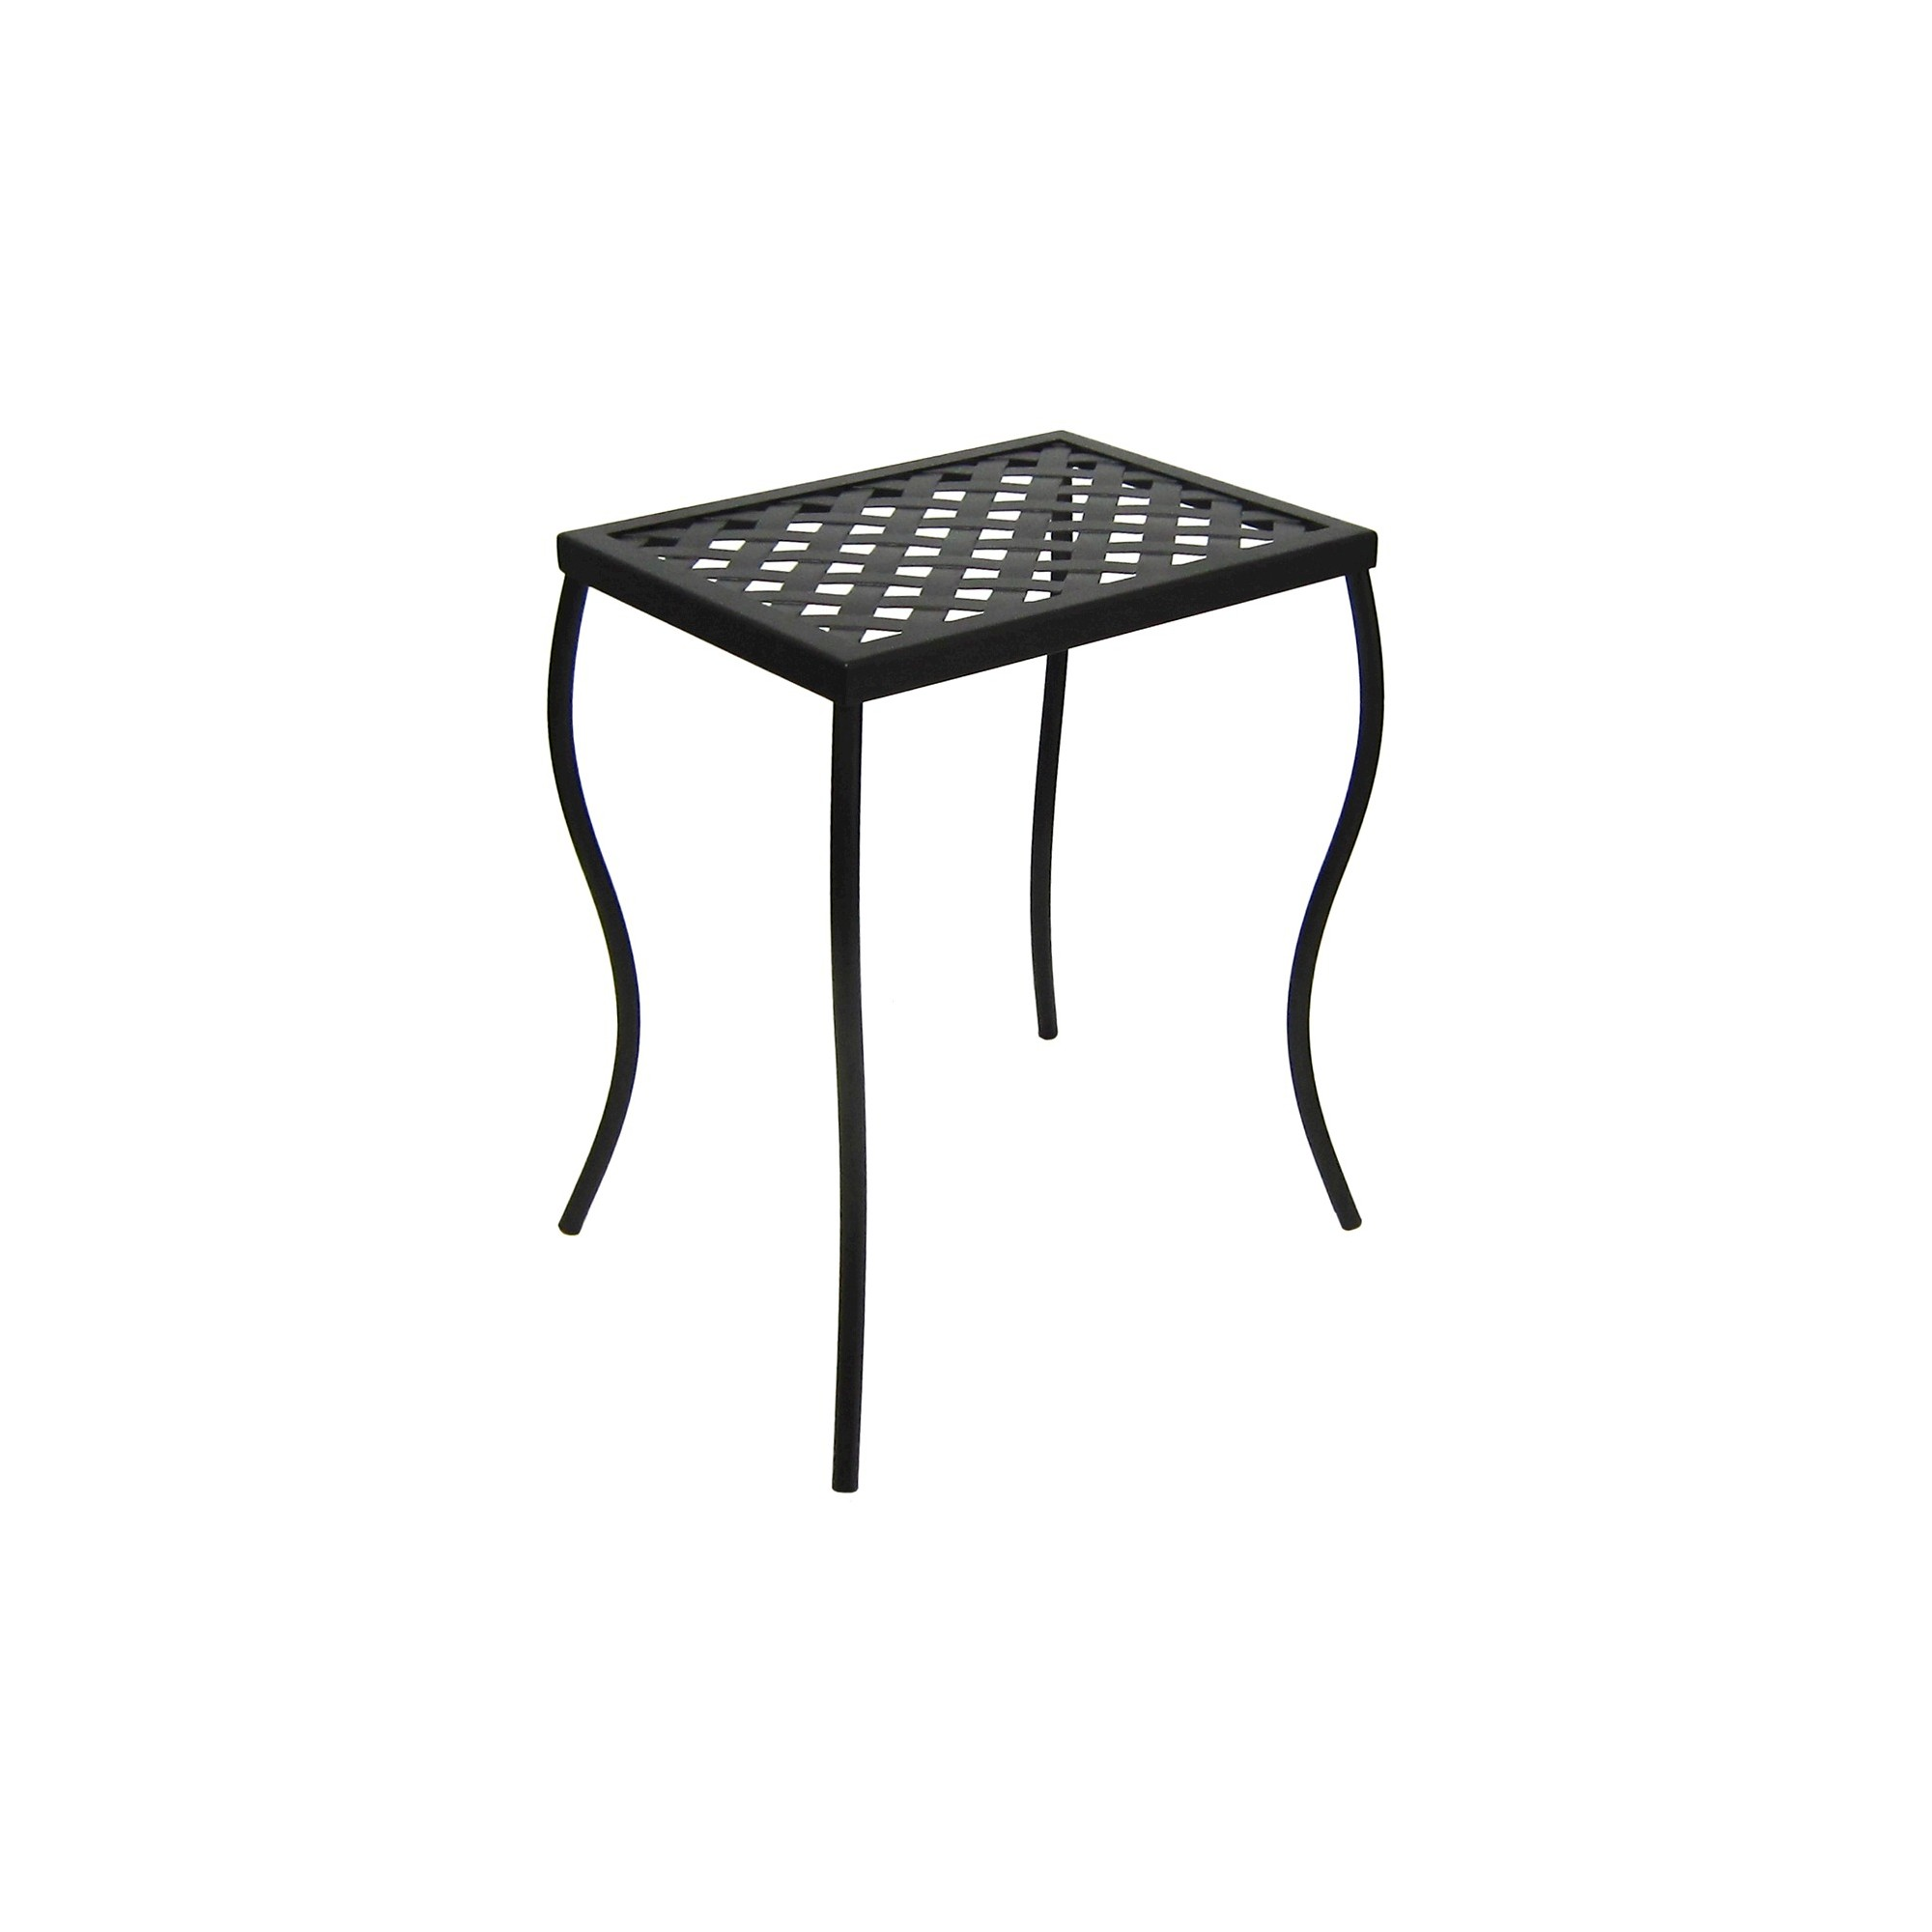 outdoor woven metal accent table threshold black products solar side design chrome unique home accessories wooden legs french bistro marble top diy square coffee junior drum stool